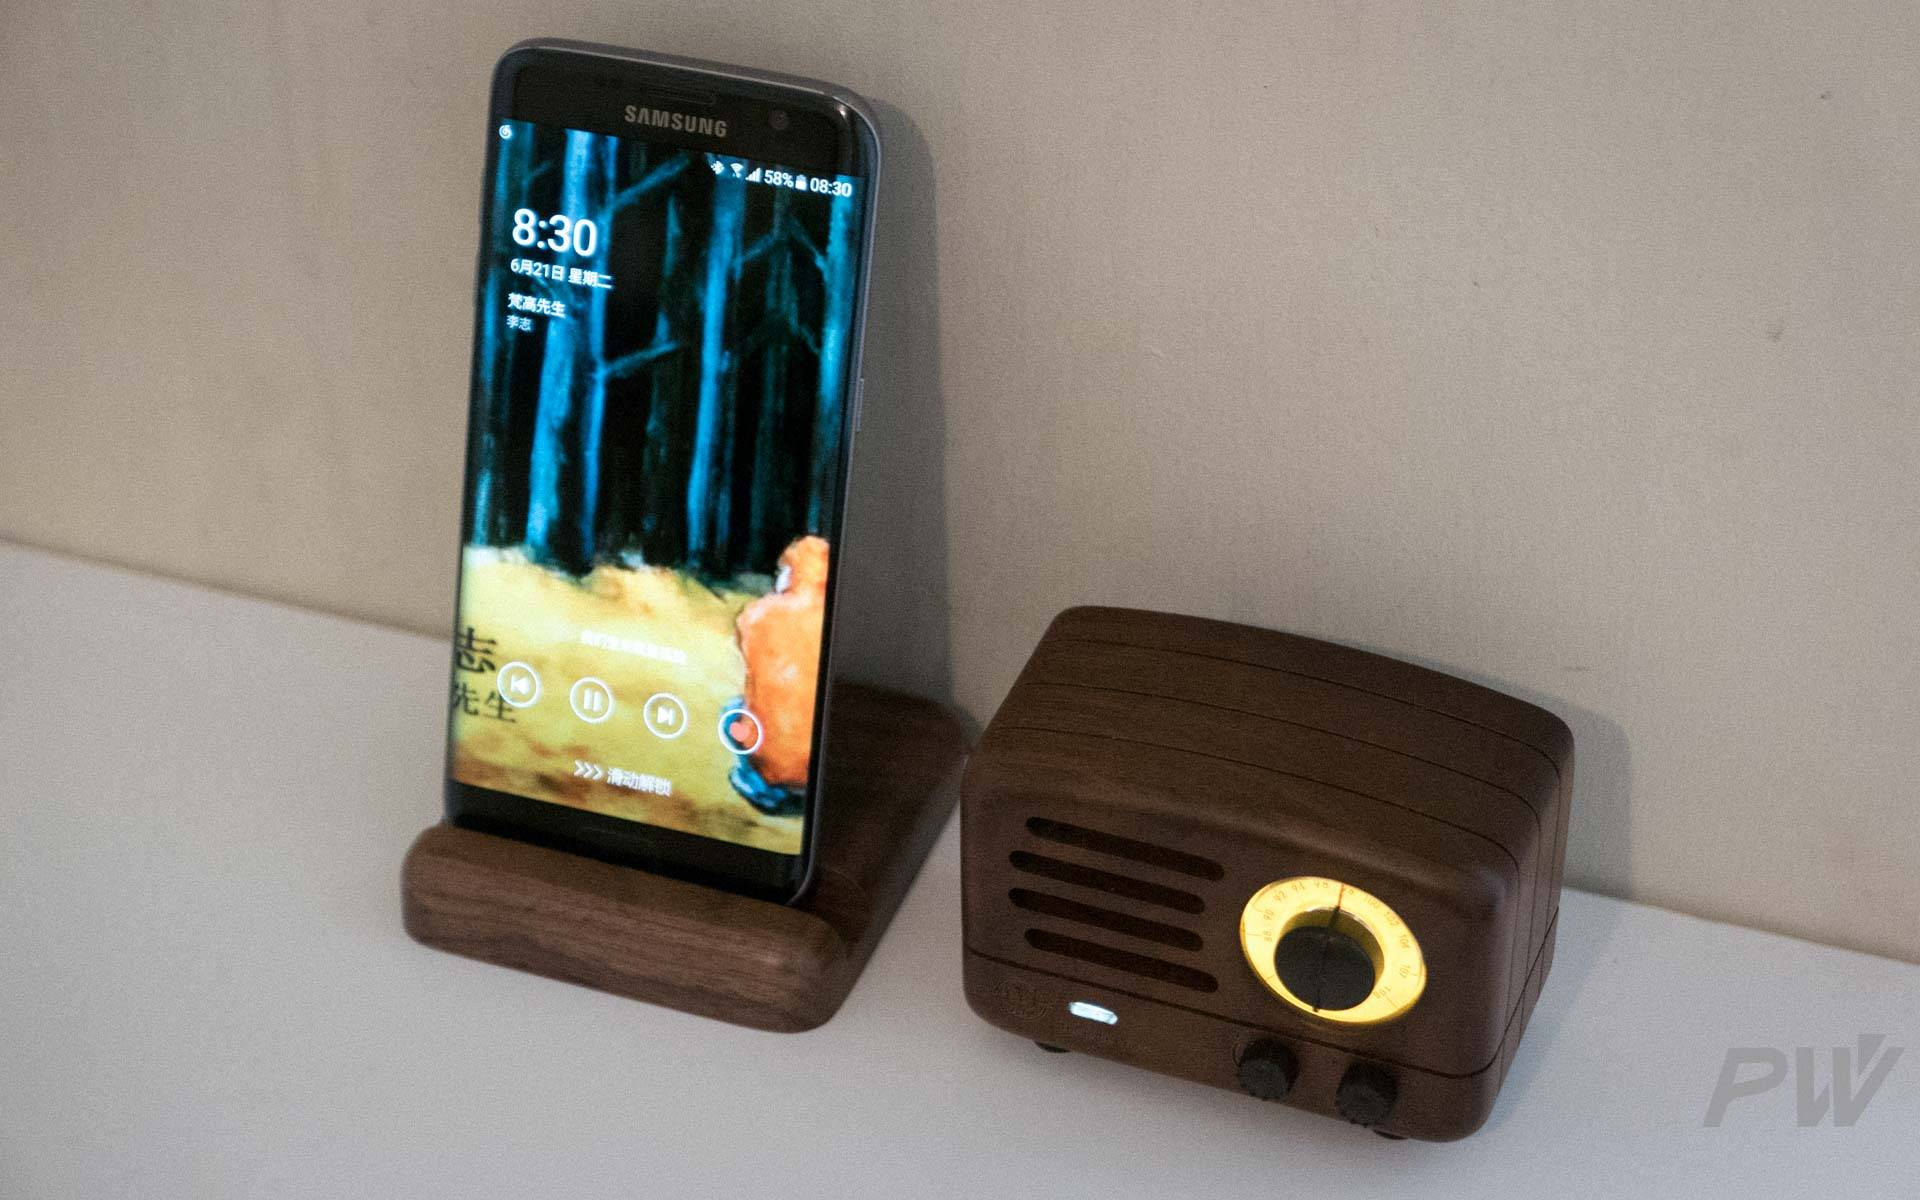 Mao King the little prince radio bluetooth speaker Oneplus 3 Galaxy S7 edge PingWest Photo by Hao Ying-2